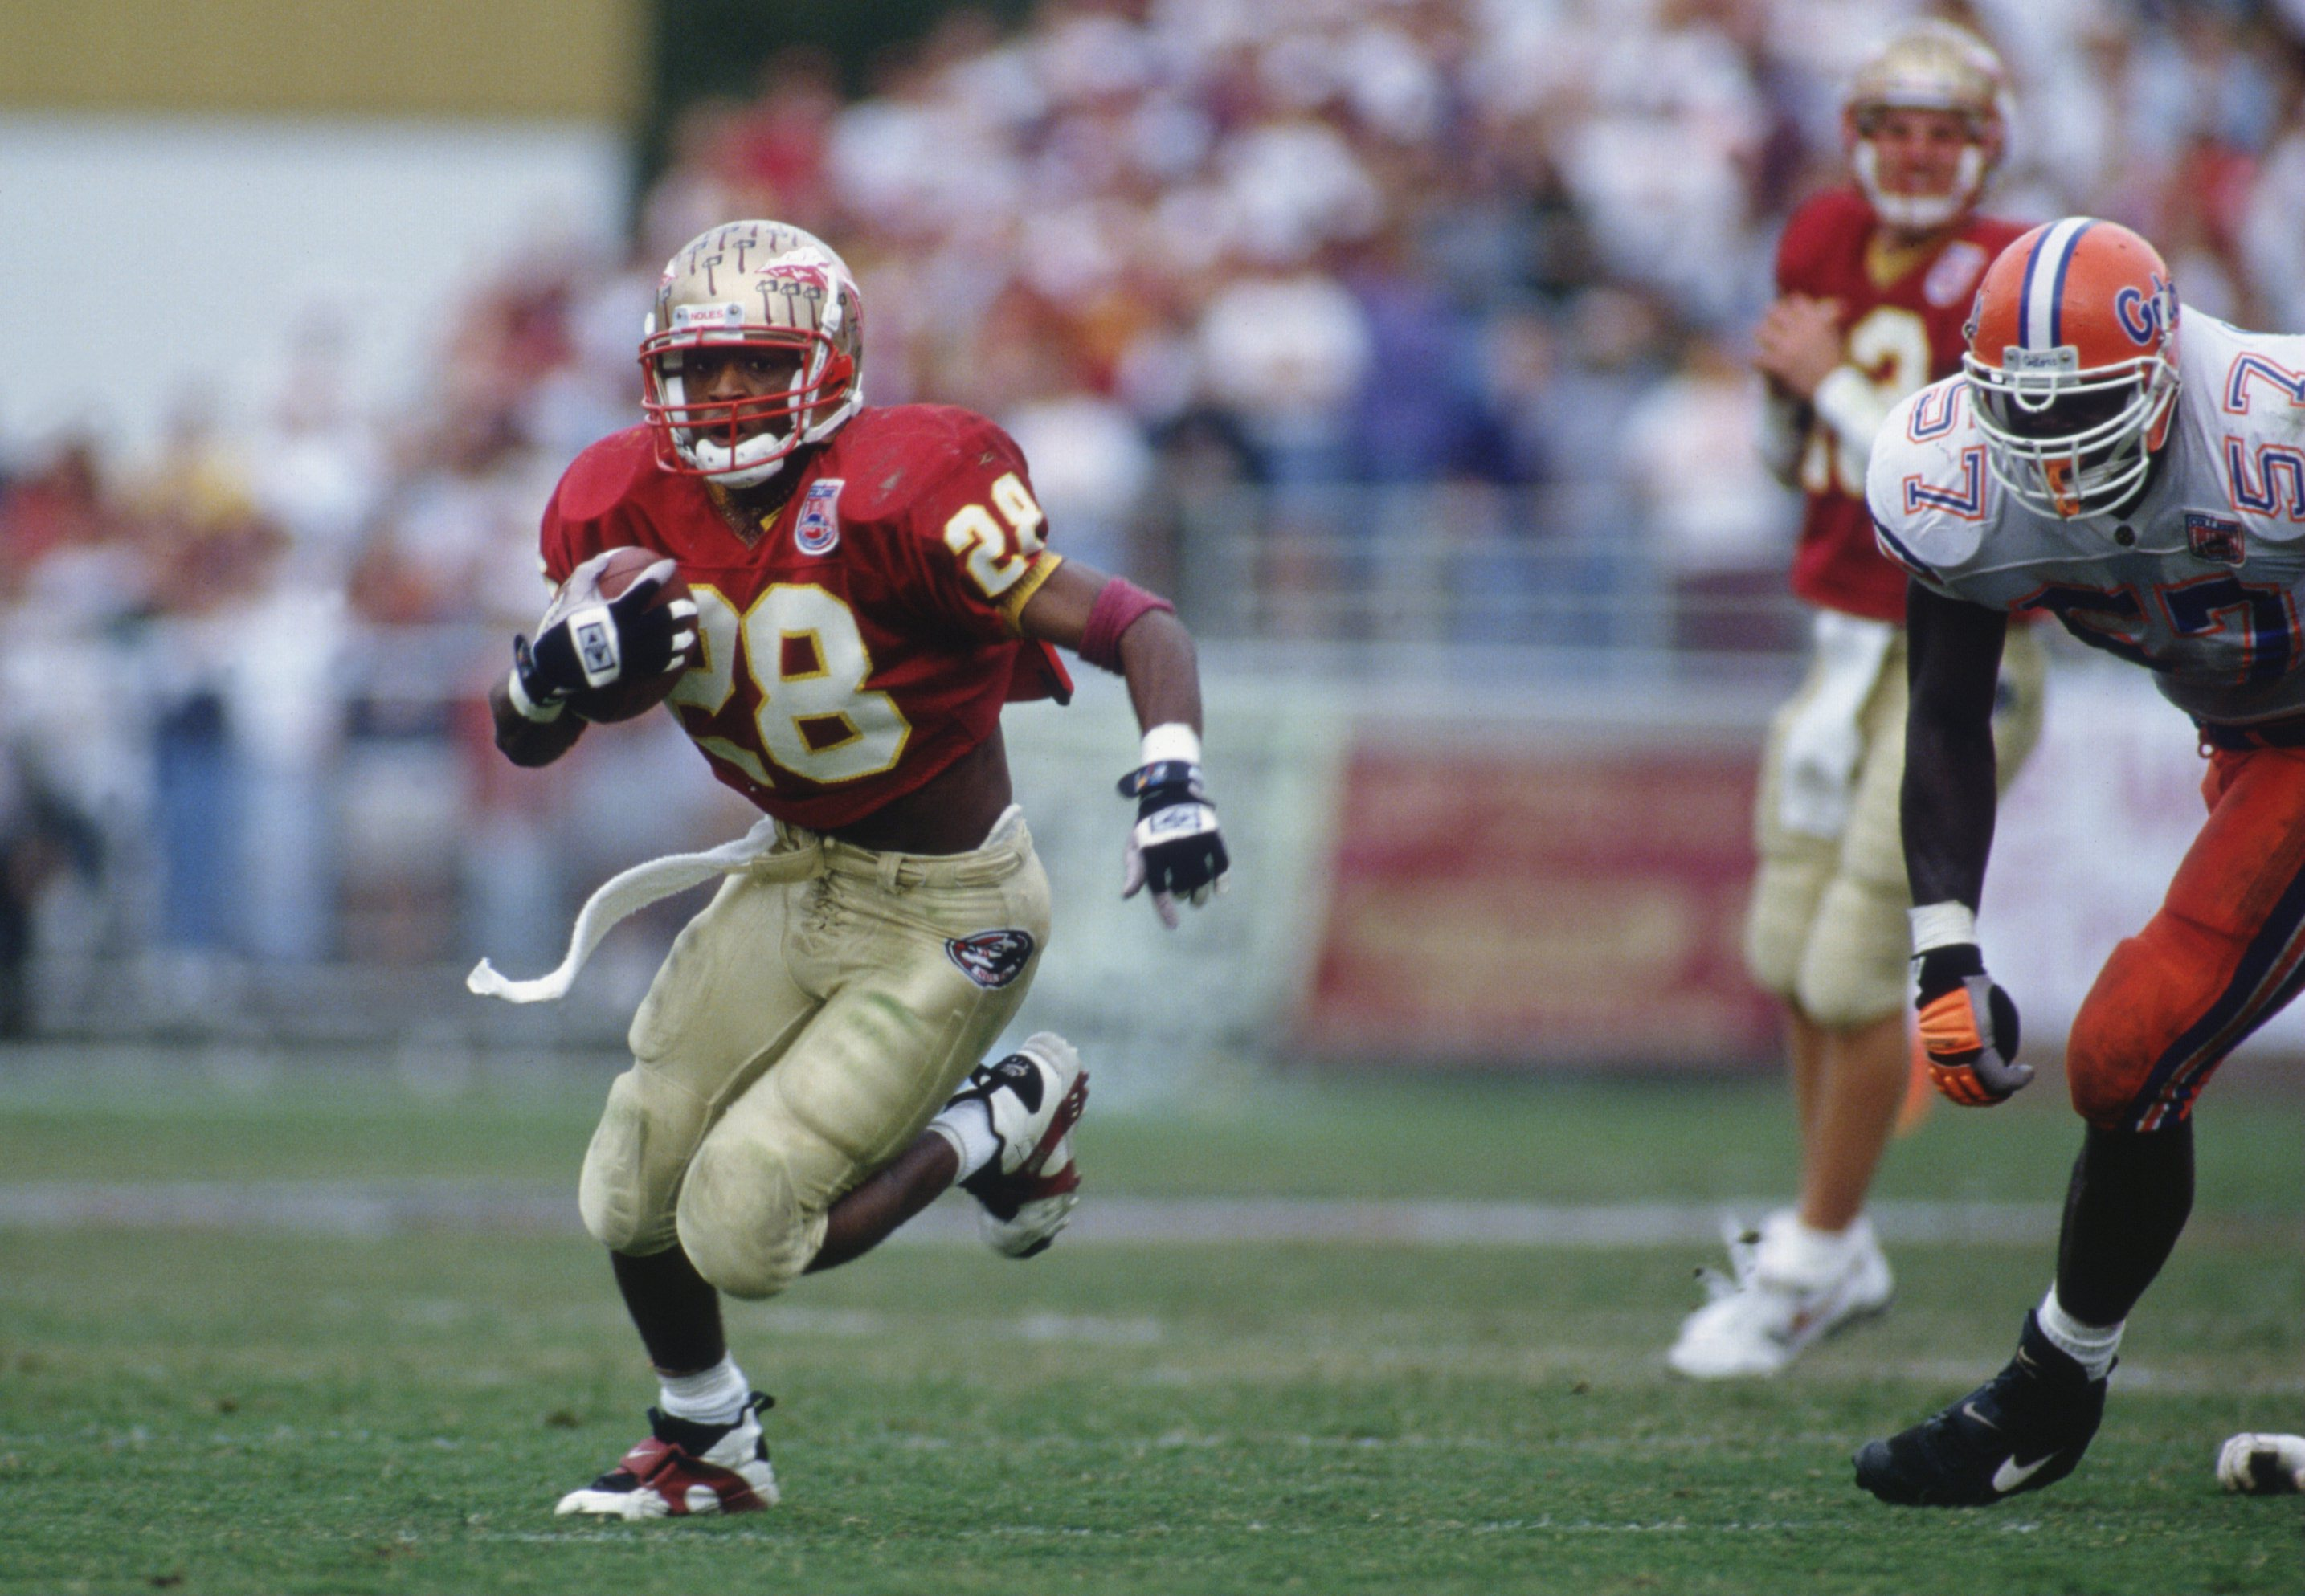 Florida Vs Florida State: 5 Best Games In Rivalry History